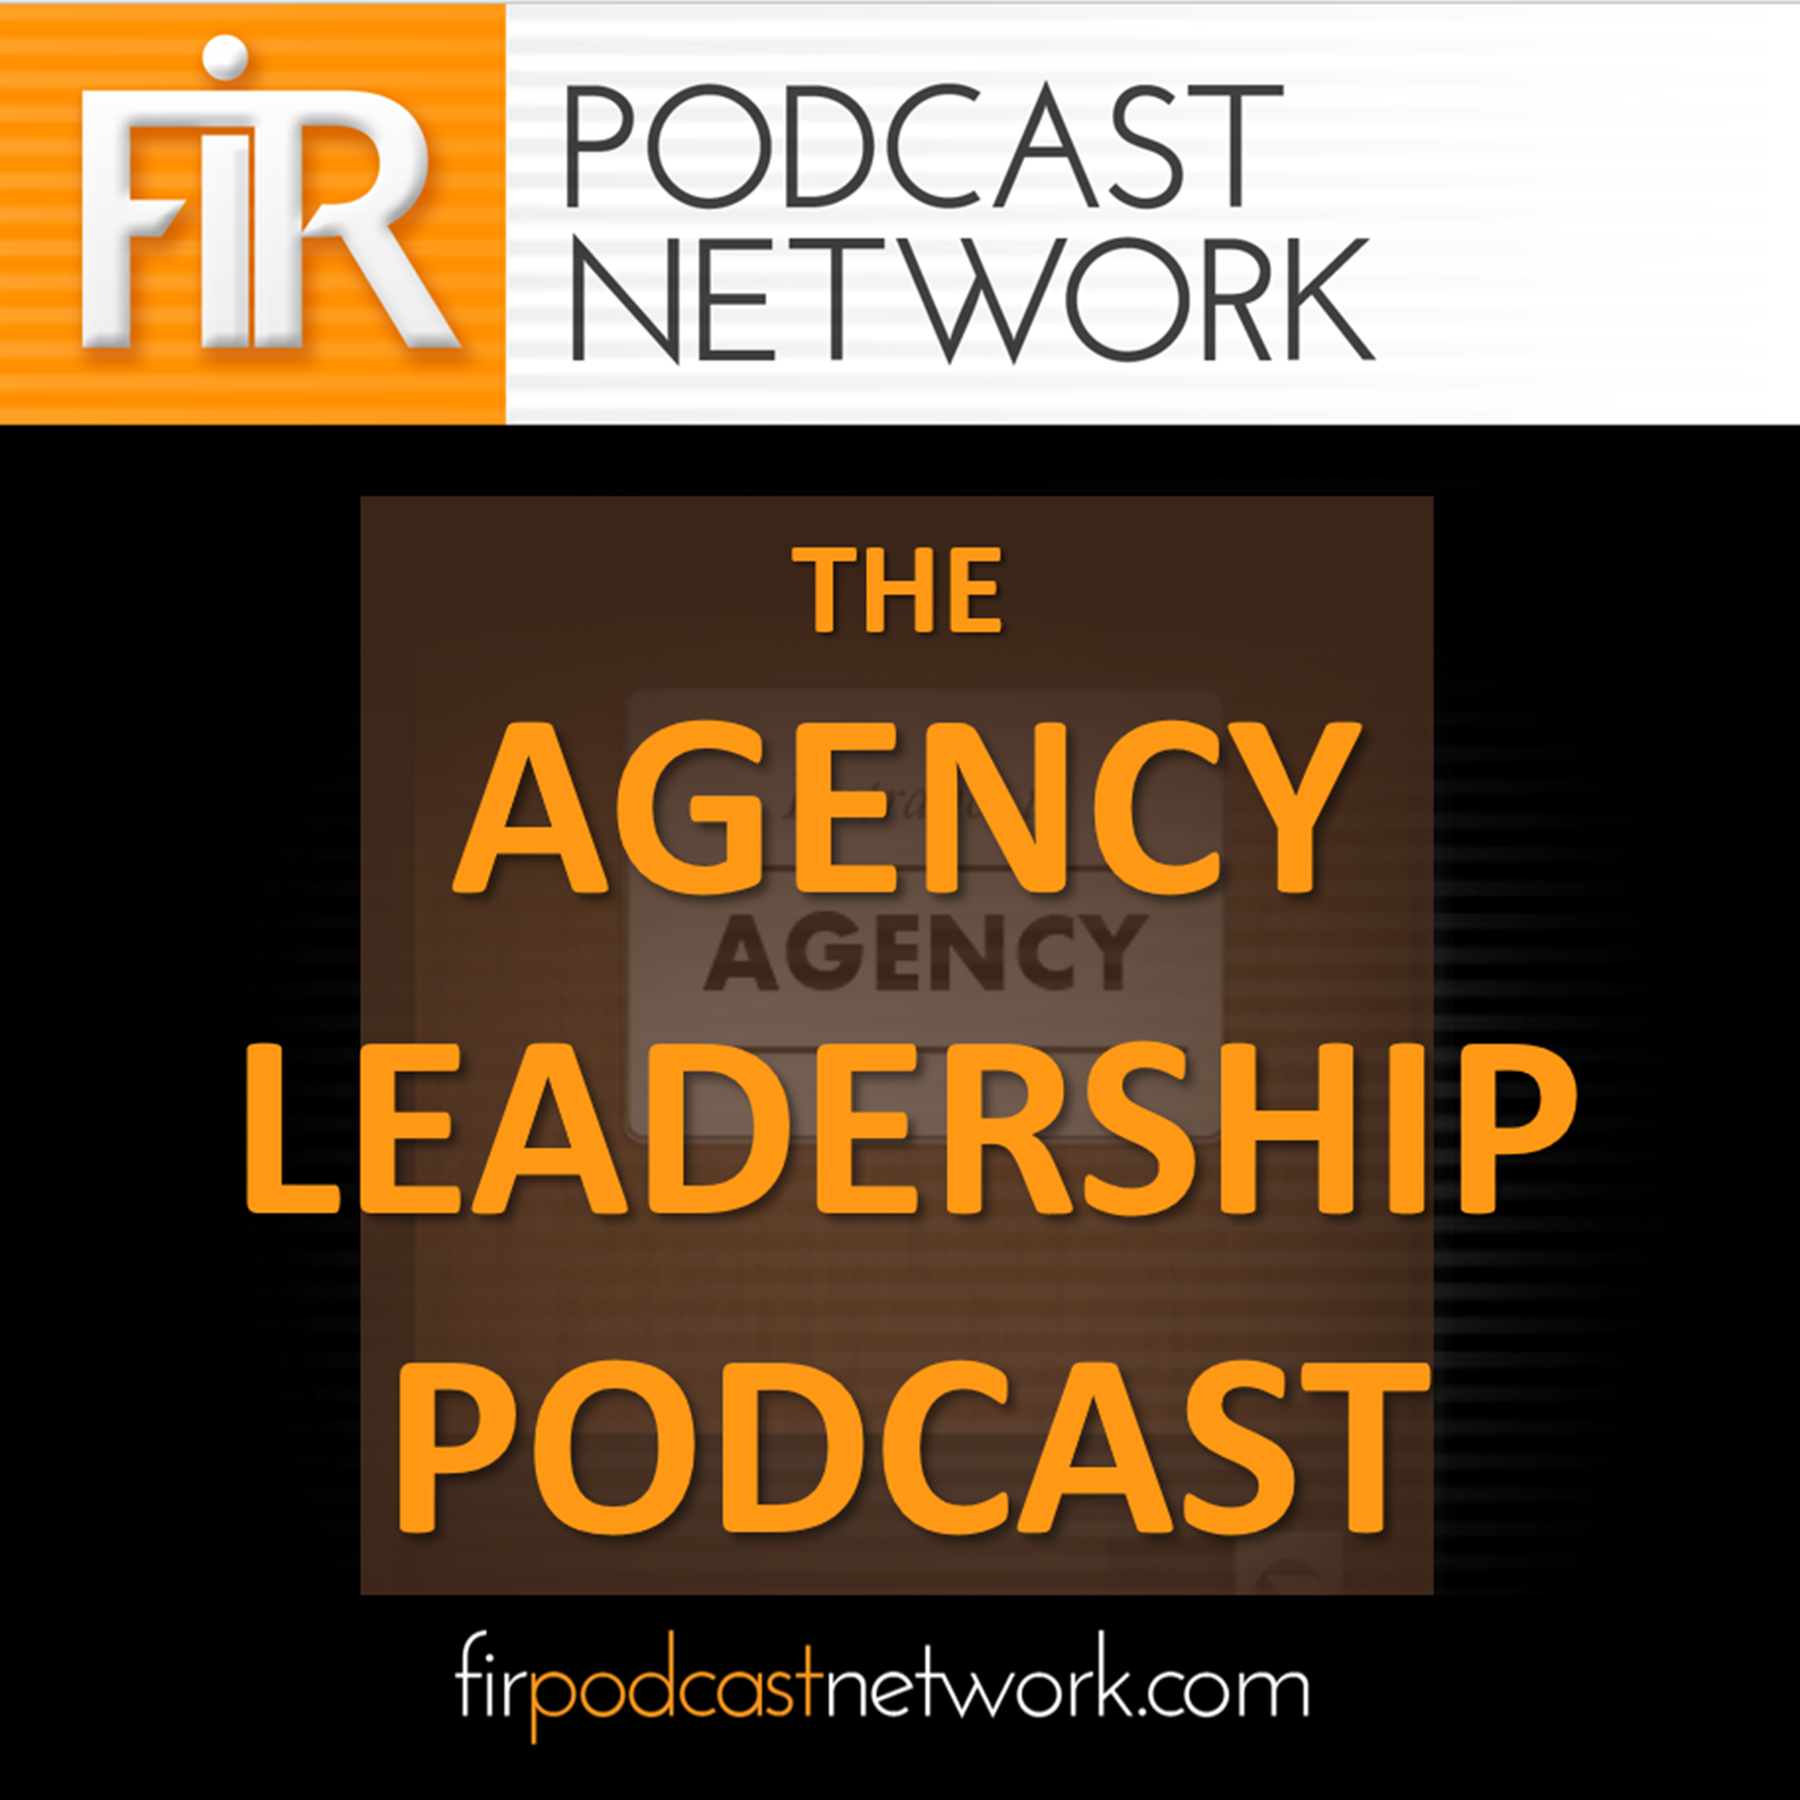 The Agency Leadership Podcast with Gini Dietrich and Chip Griffin